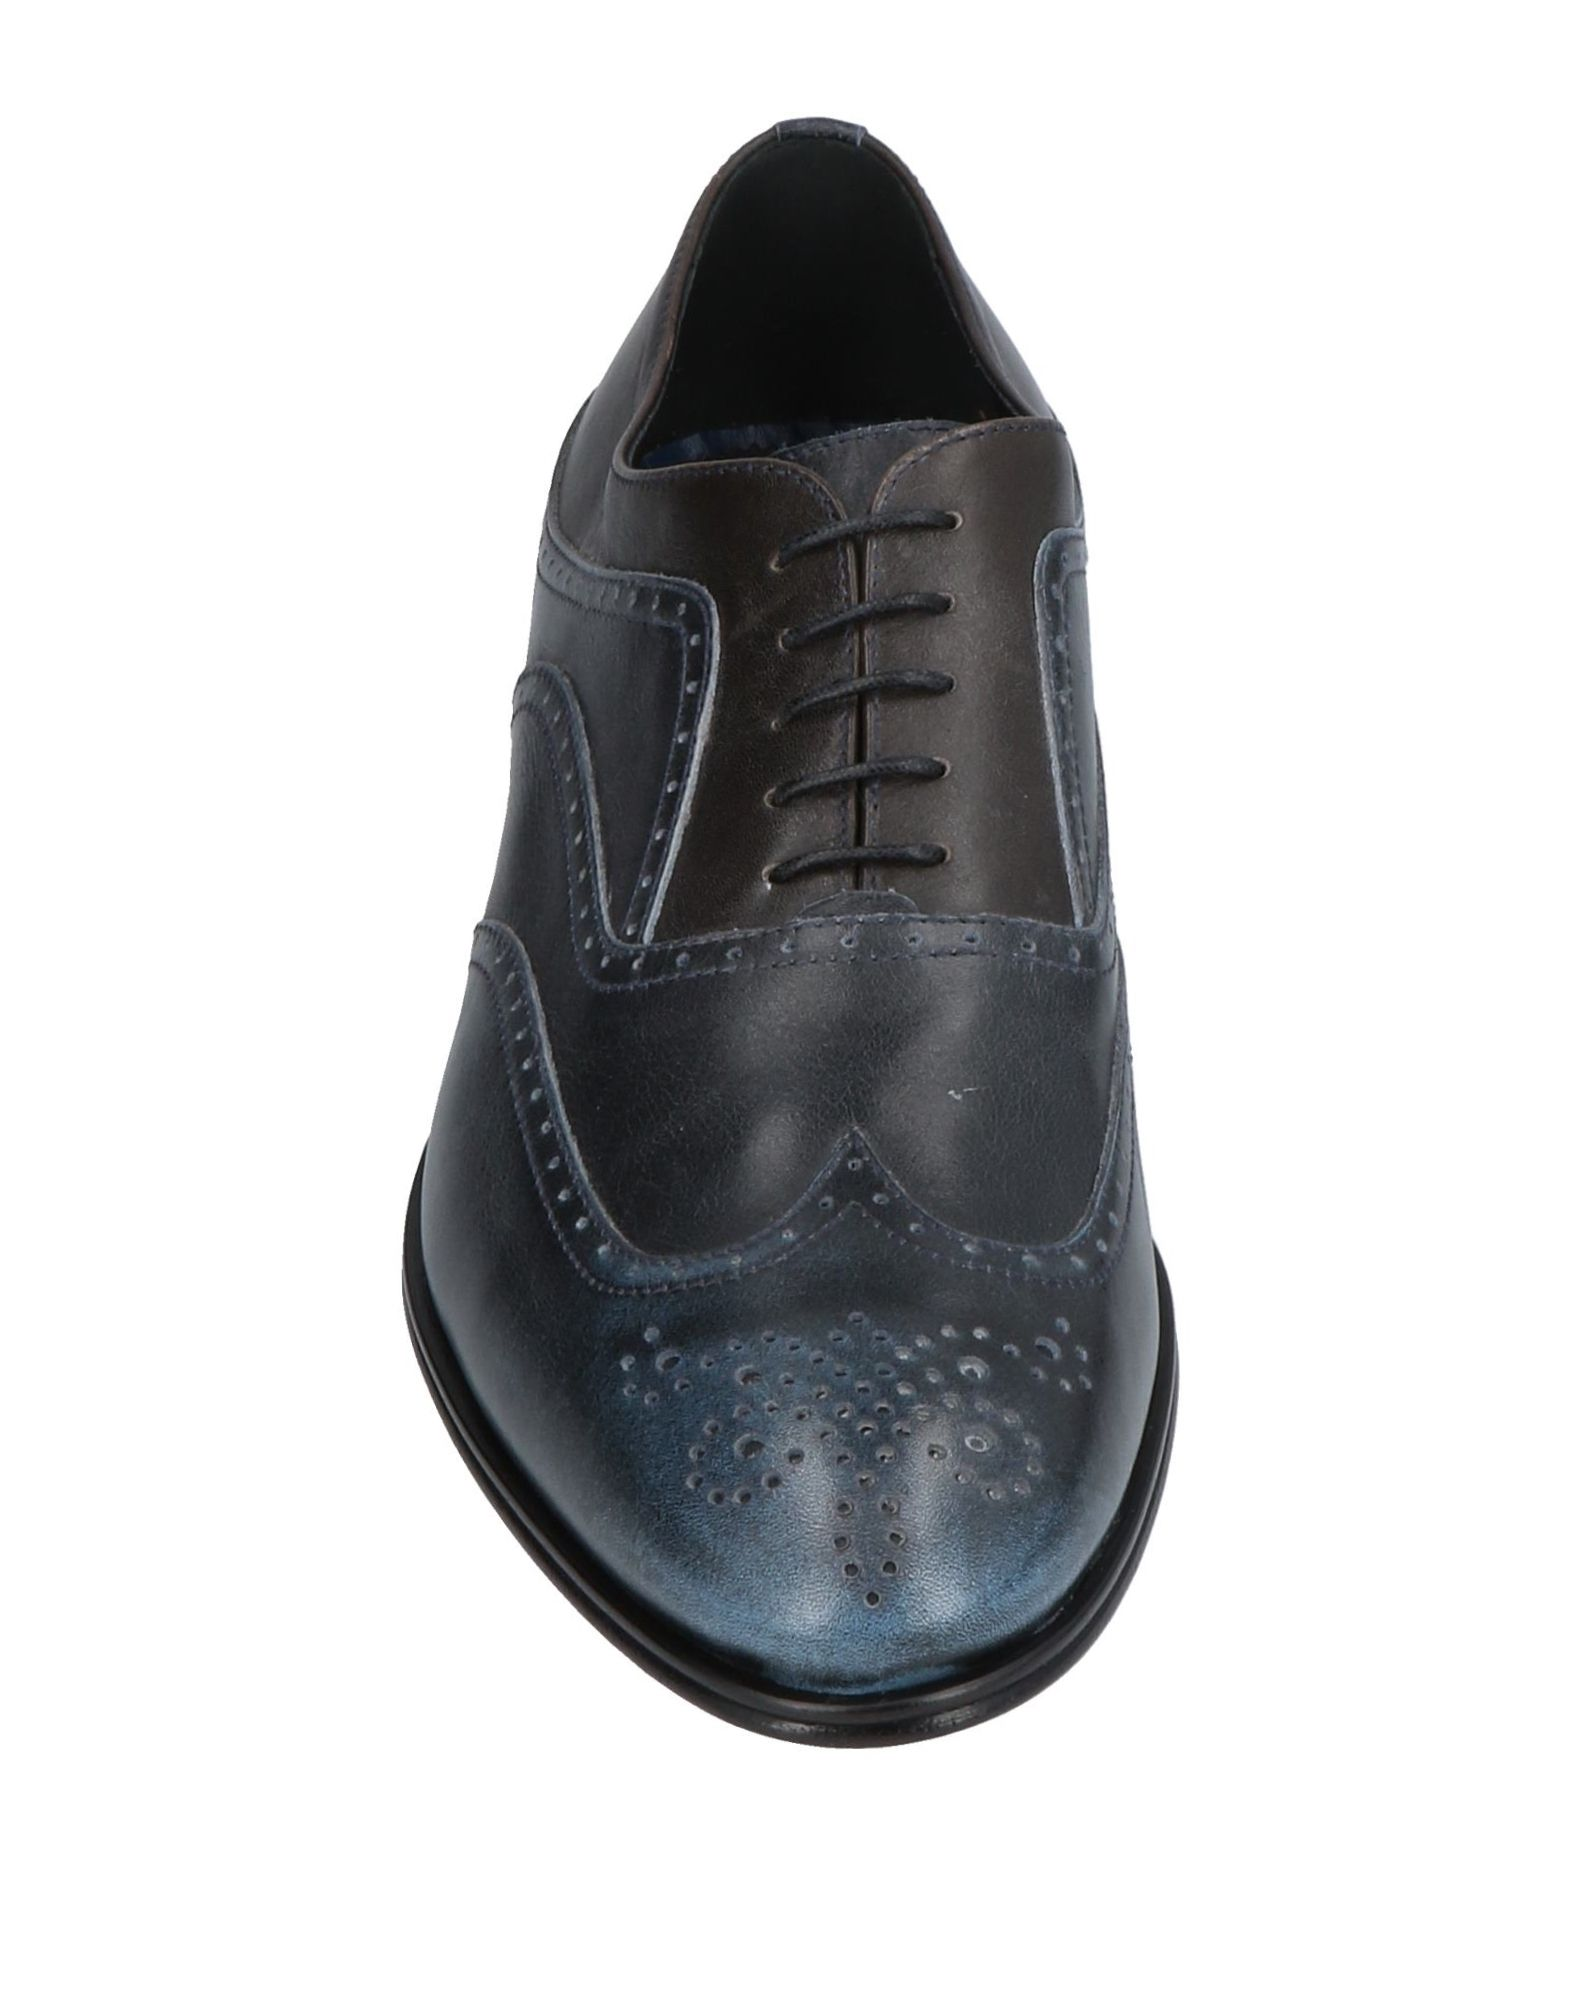 Chaussures À Lacets Alberto Guardiani Homme - Chaussures À Lacets Alberto Guardiani sur